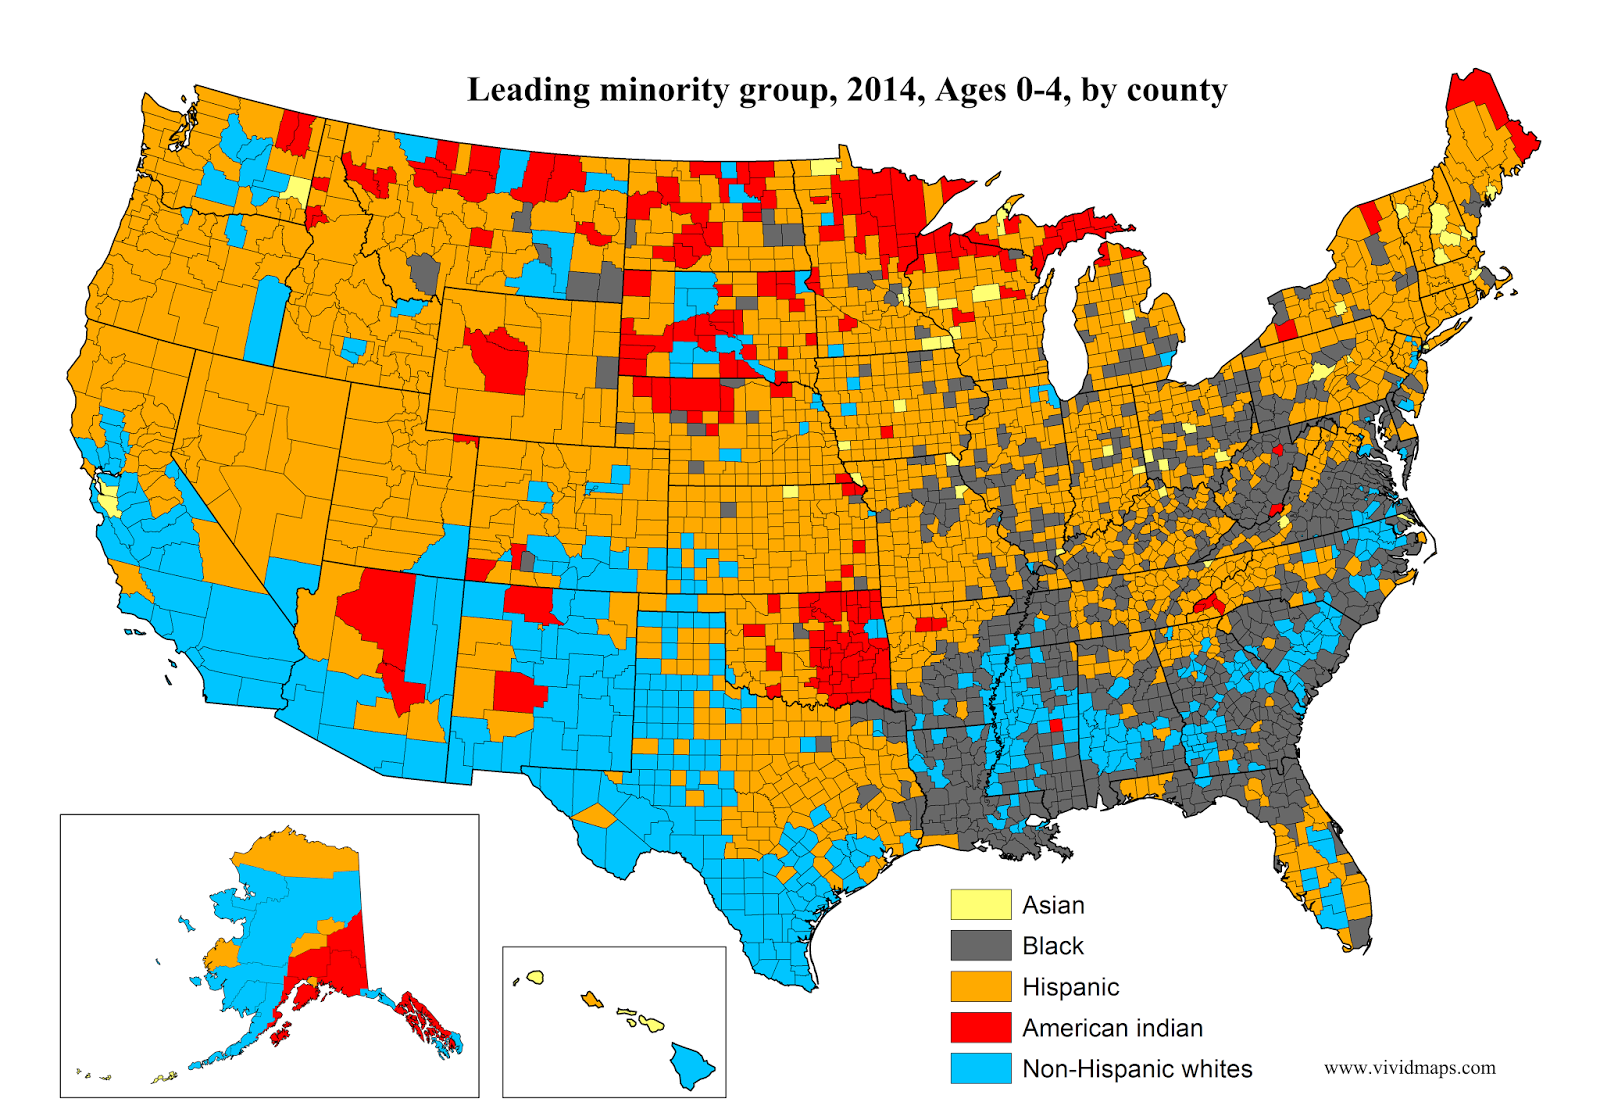 Leading minority group, Ages 0-4, by county